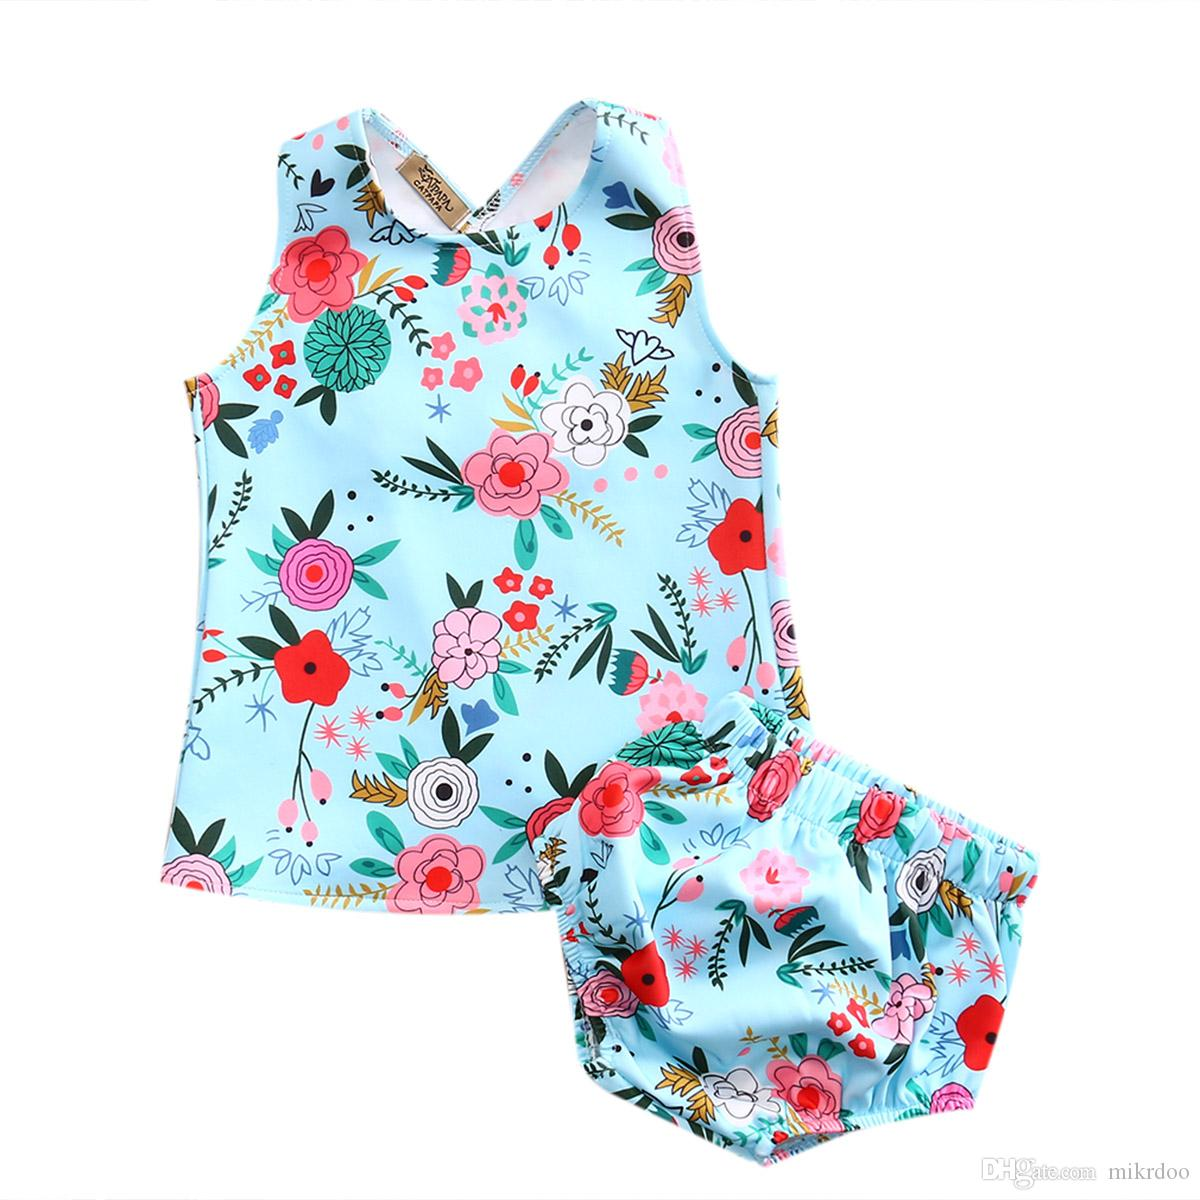 Mikrdoo Summer Hot Baby Suit Flower Toddler Kids Girls Floral Vest Pants Set Tank Top Bottom Cotton Clothes Fashion Outfits Wholesale